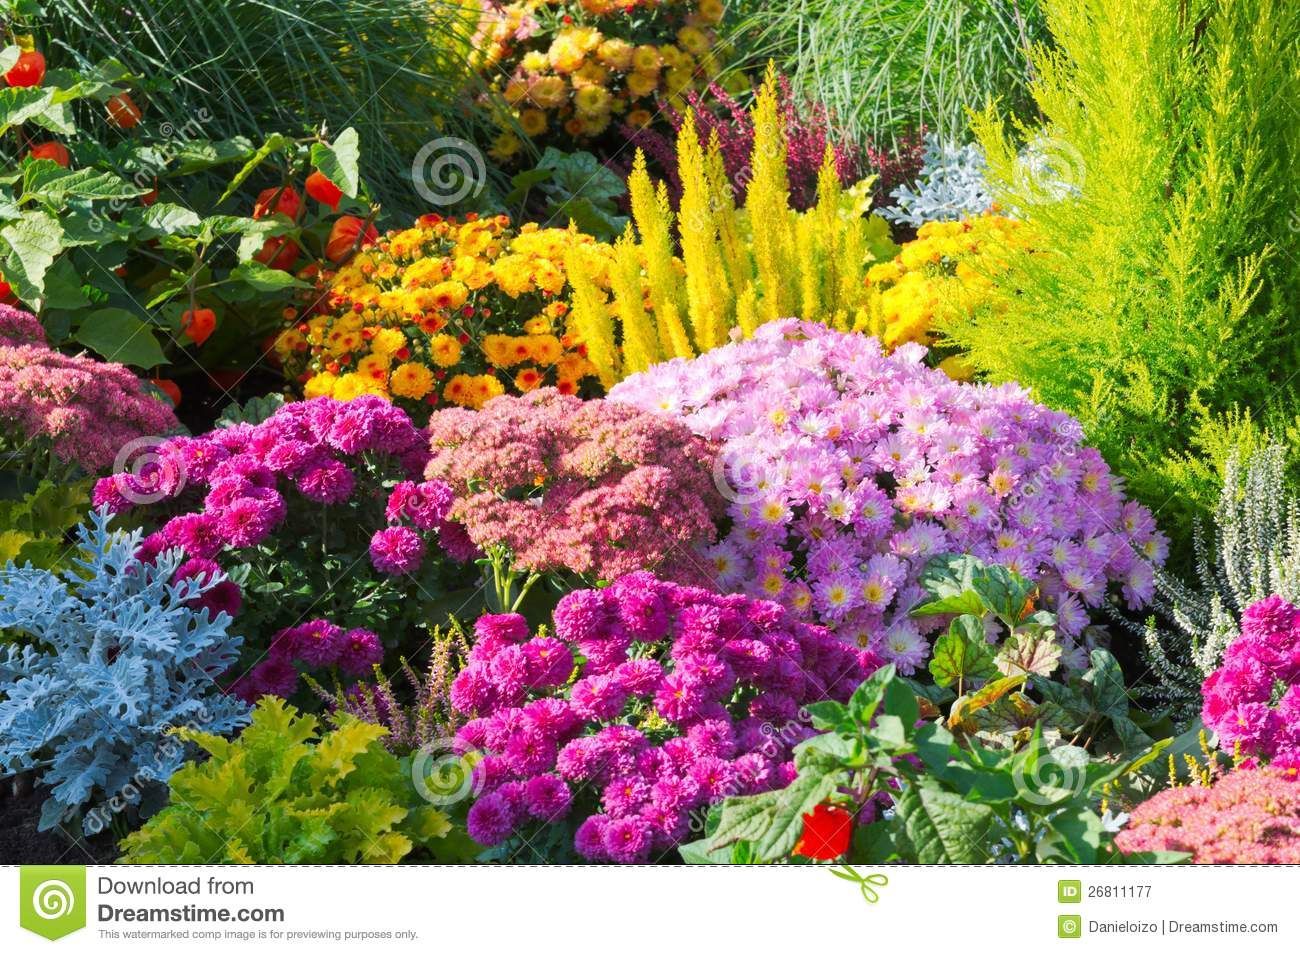 Flowers In Garden Stock Image. Image Of Head, Decoration